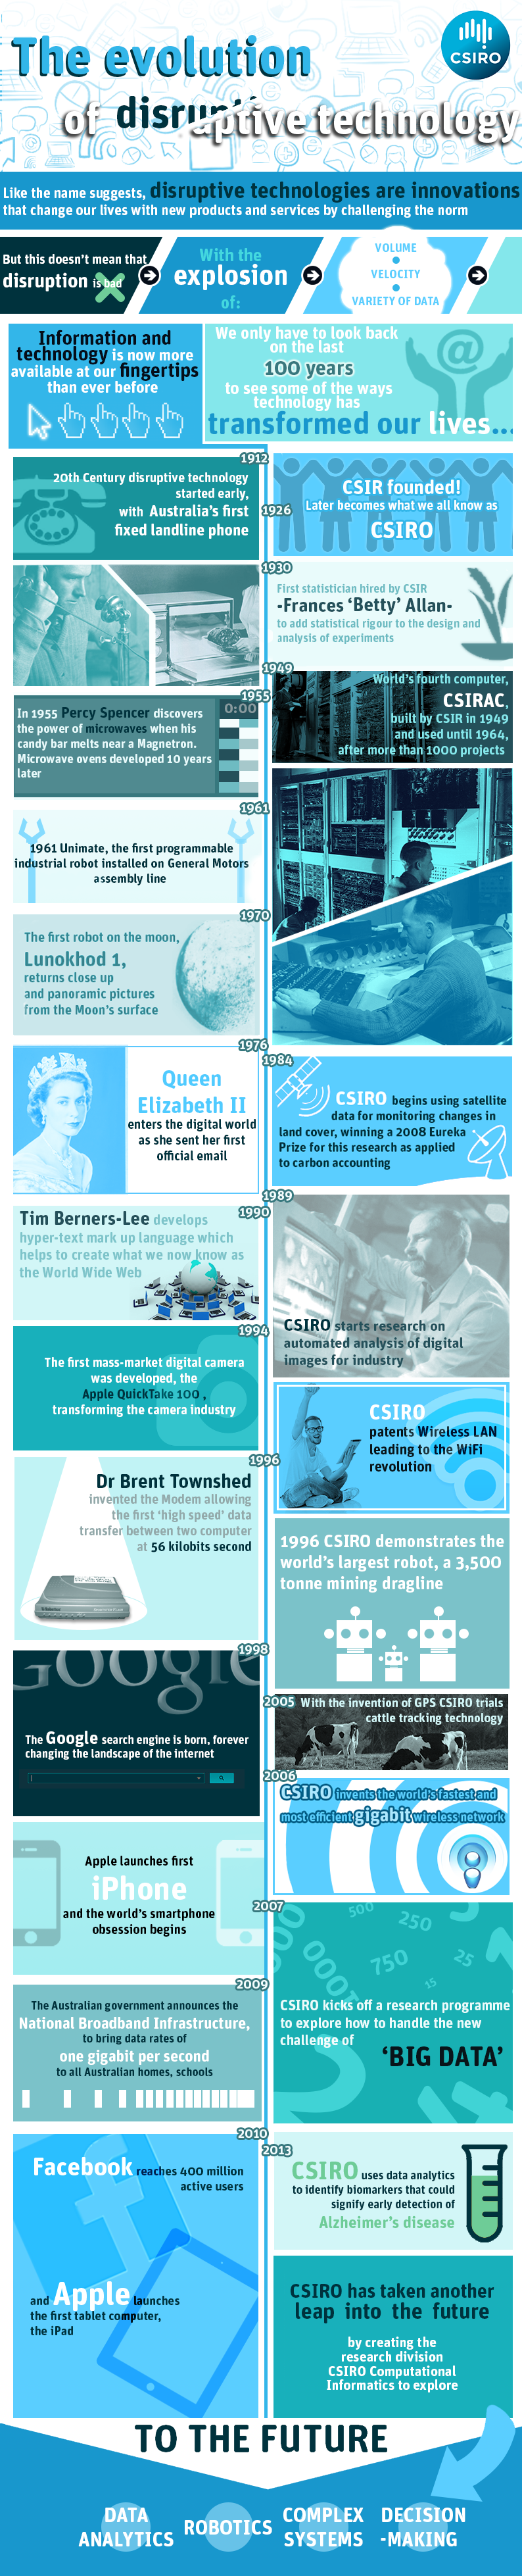 The evolution of disruptive tech over the past 100 years. Click on image for full size or view on Pinterest.